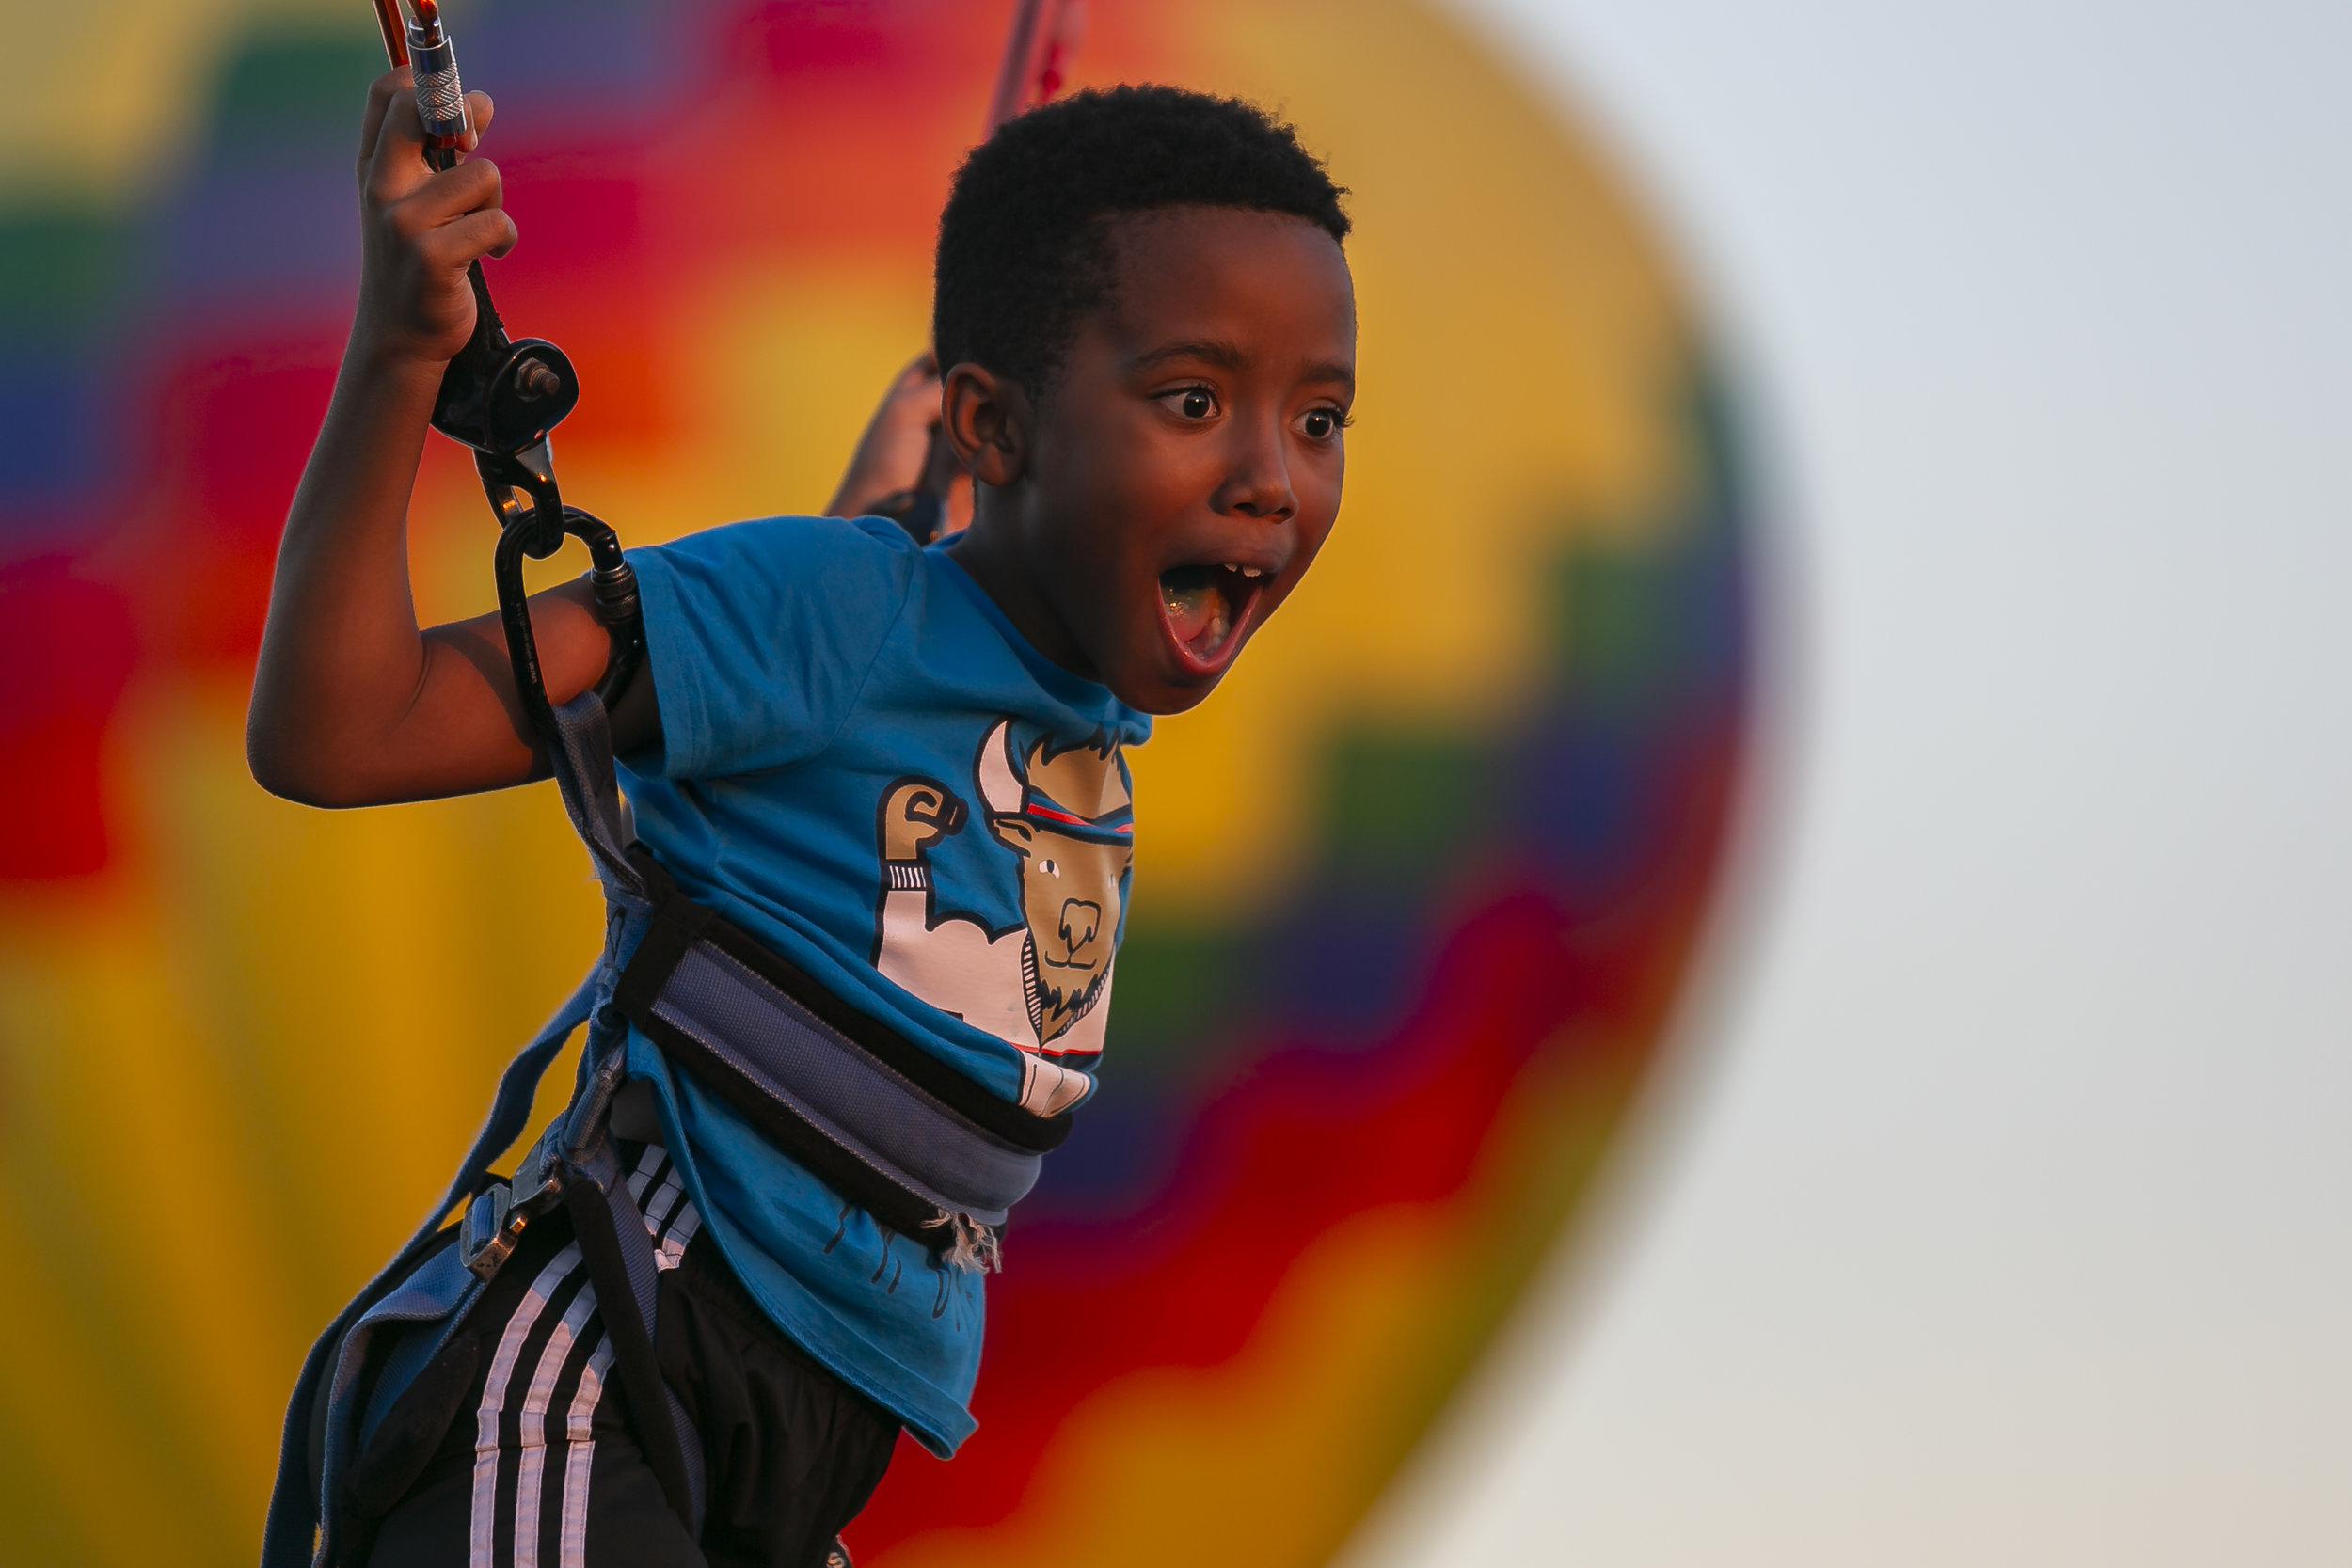 Dax, 9, reacts while riding a bungee trampoline during the Homestead Miami Balloon Glow on March 2, 2019, near the Homestead-Miami Speedway in Homestead, Florida.